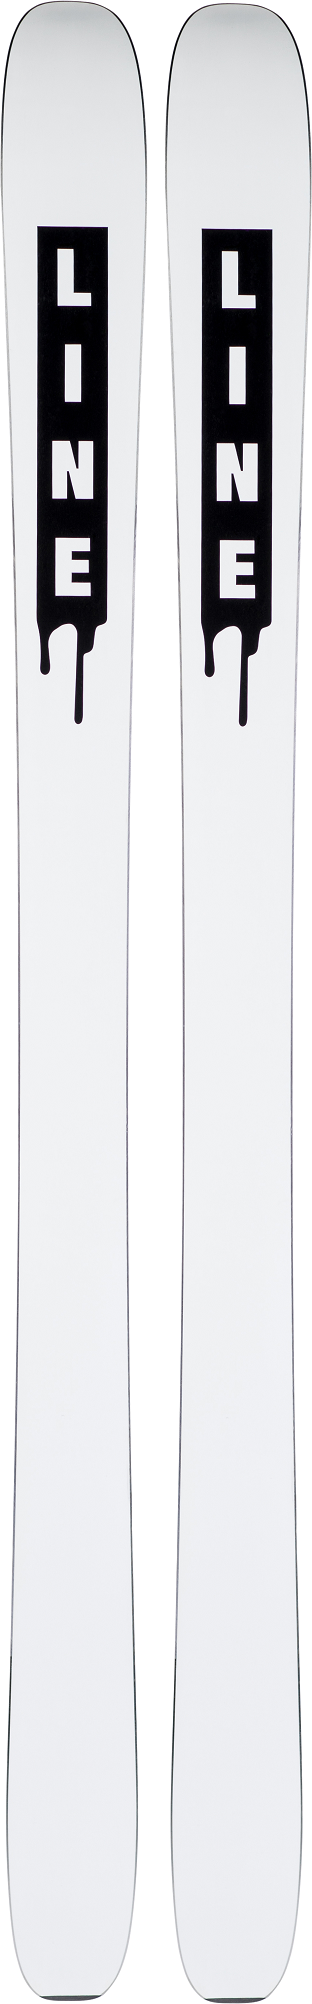 Image 1 of LINE - VISION 98 SKIS, 179 cm - 2020